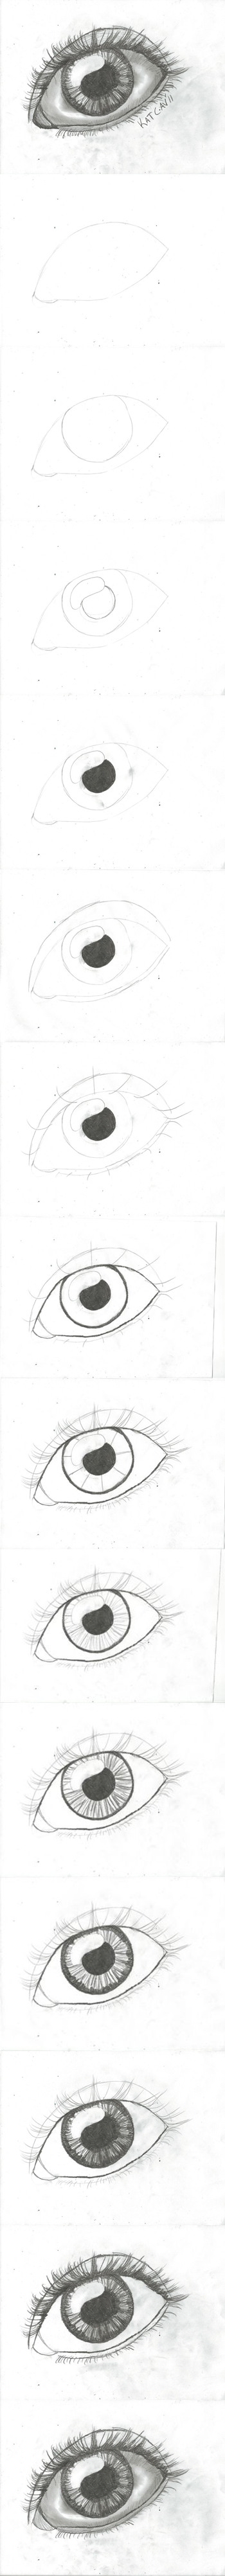 How to draw an eye step by step DIY instructions